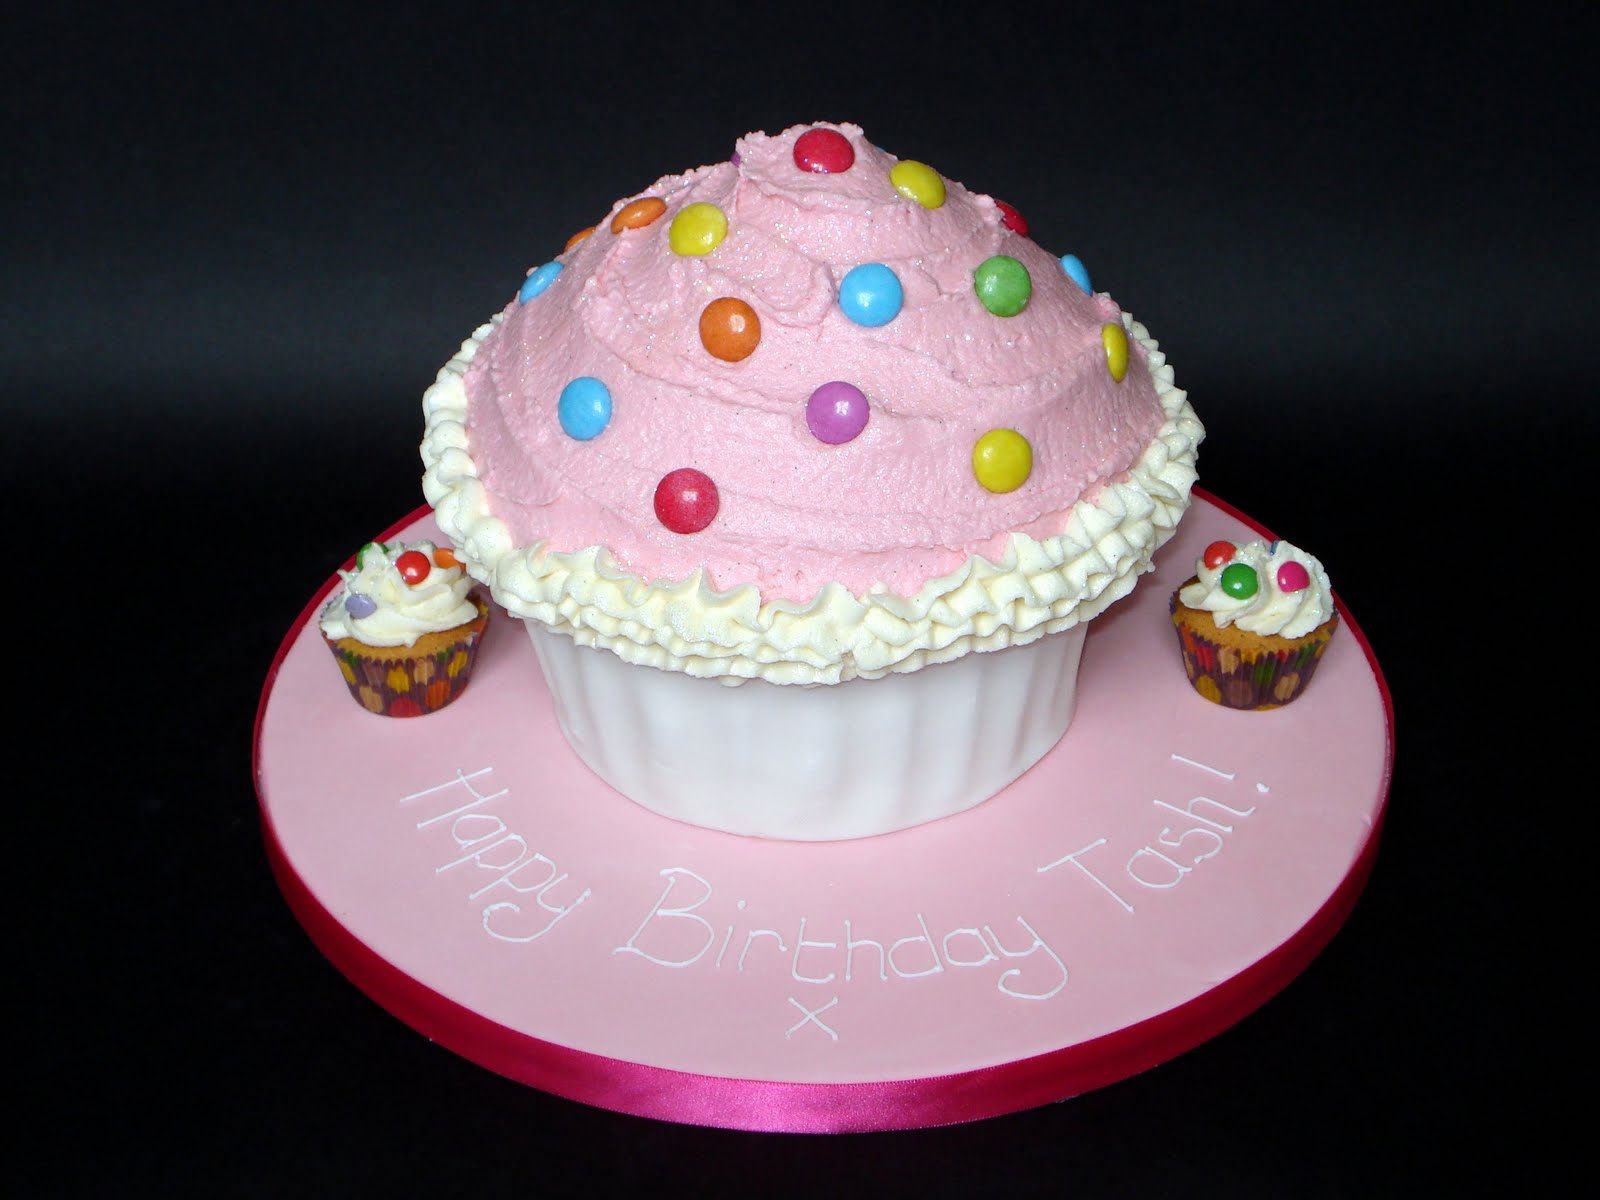 Custom Cake Design: Pink and White Giant Cupcake